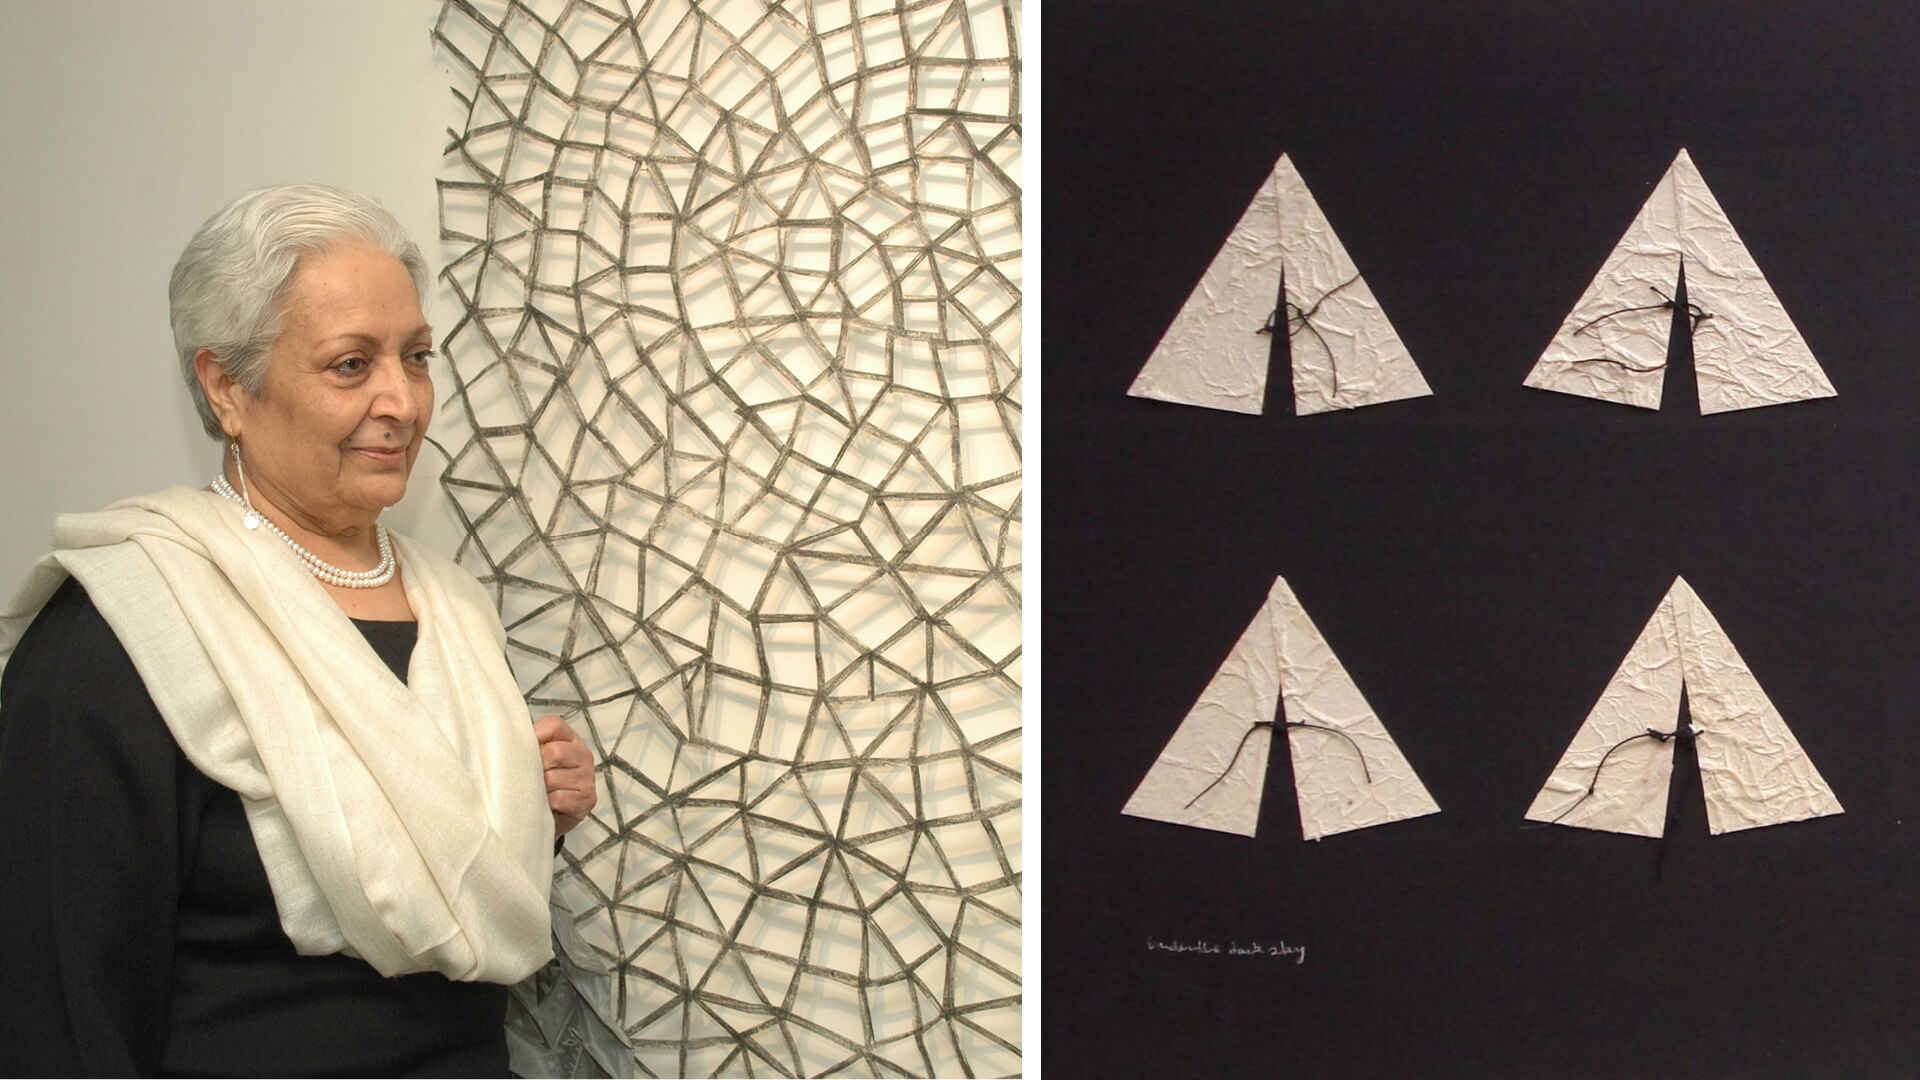 Zarina Hashmi (left), and her artwork 'Under the Dark Sky, Collage' | Zarina Hashmi | STIRworld